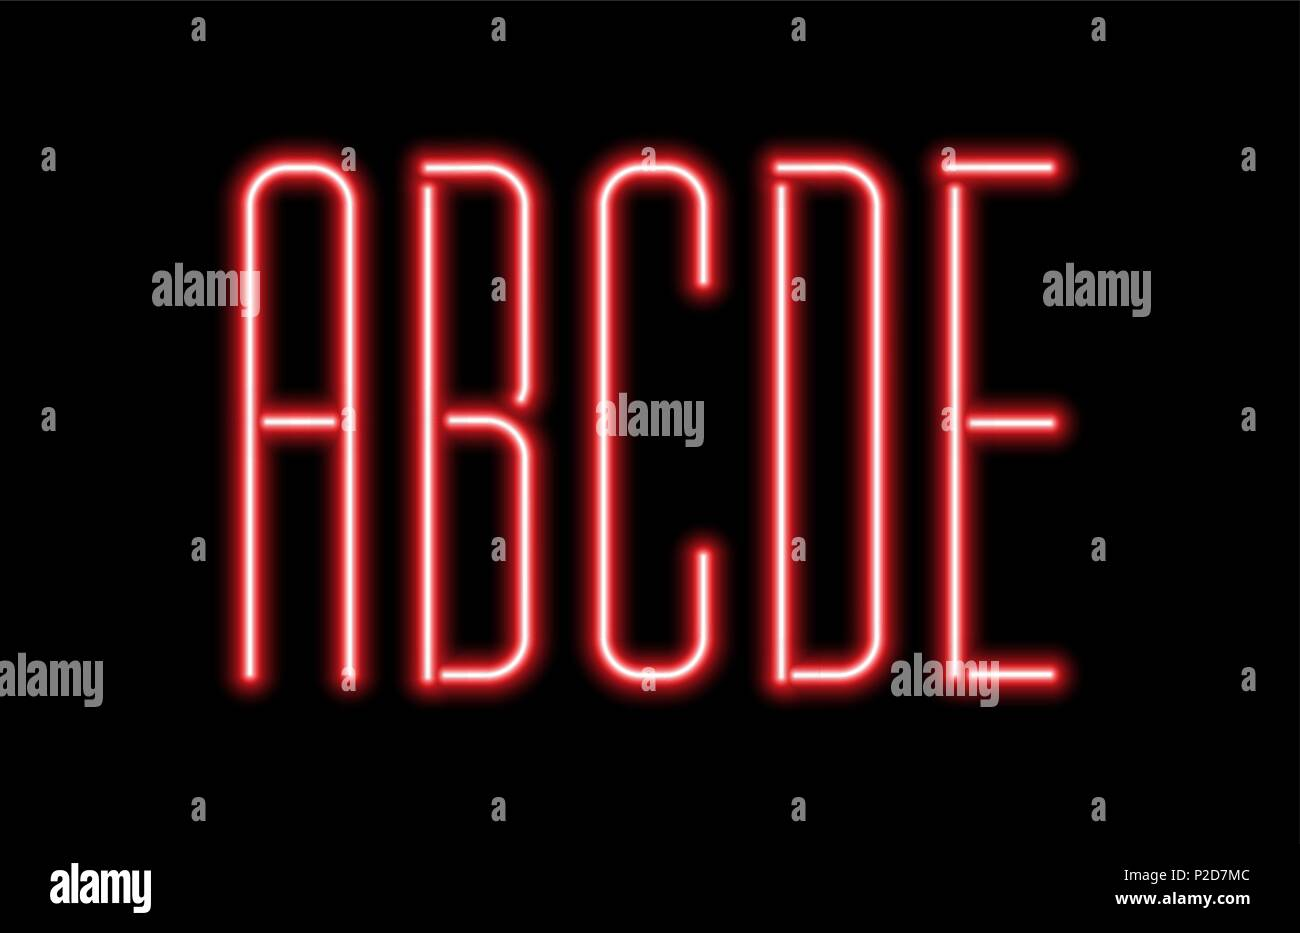 a7bedb7ffc Bright red neon letters on a black background. Letters A, B, C,